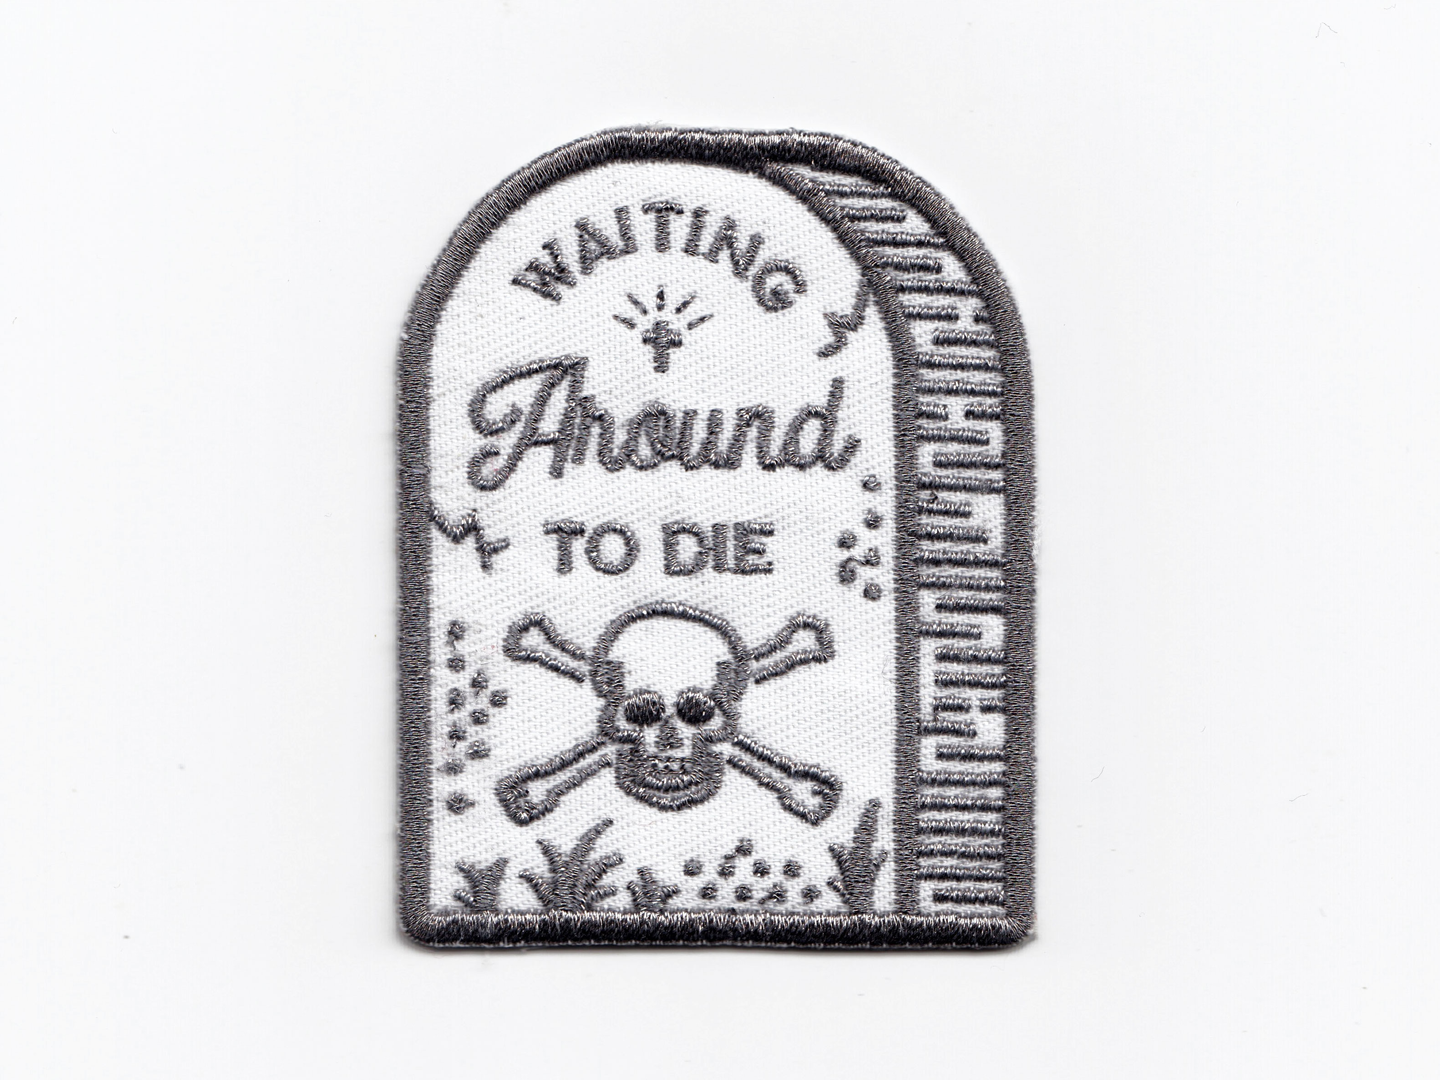 Townes Van Zandt - Waiting Around to Die patch design blaze boley willie nelson punk rock skull and crossbones lyrics embroidered patch illustration typography gravestone outlaw country country music patches townes townes van zandt